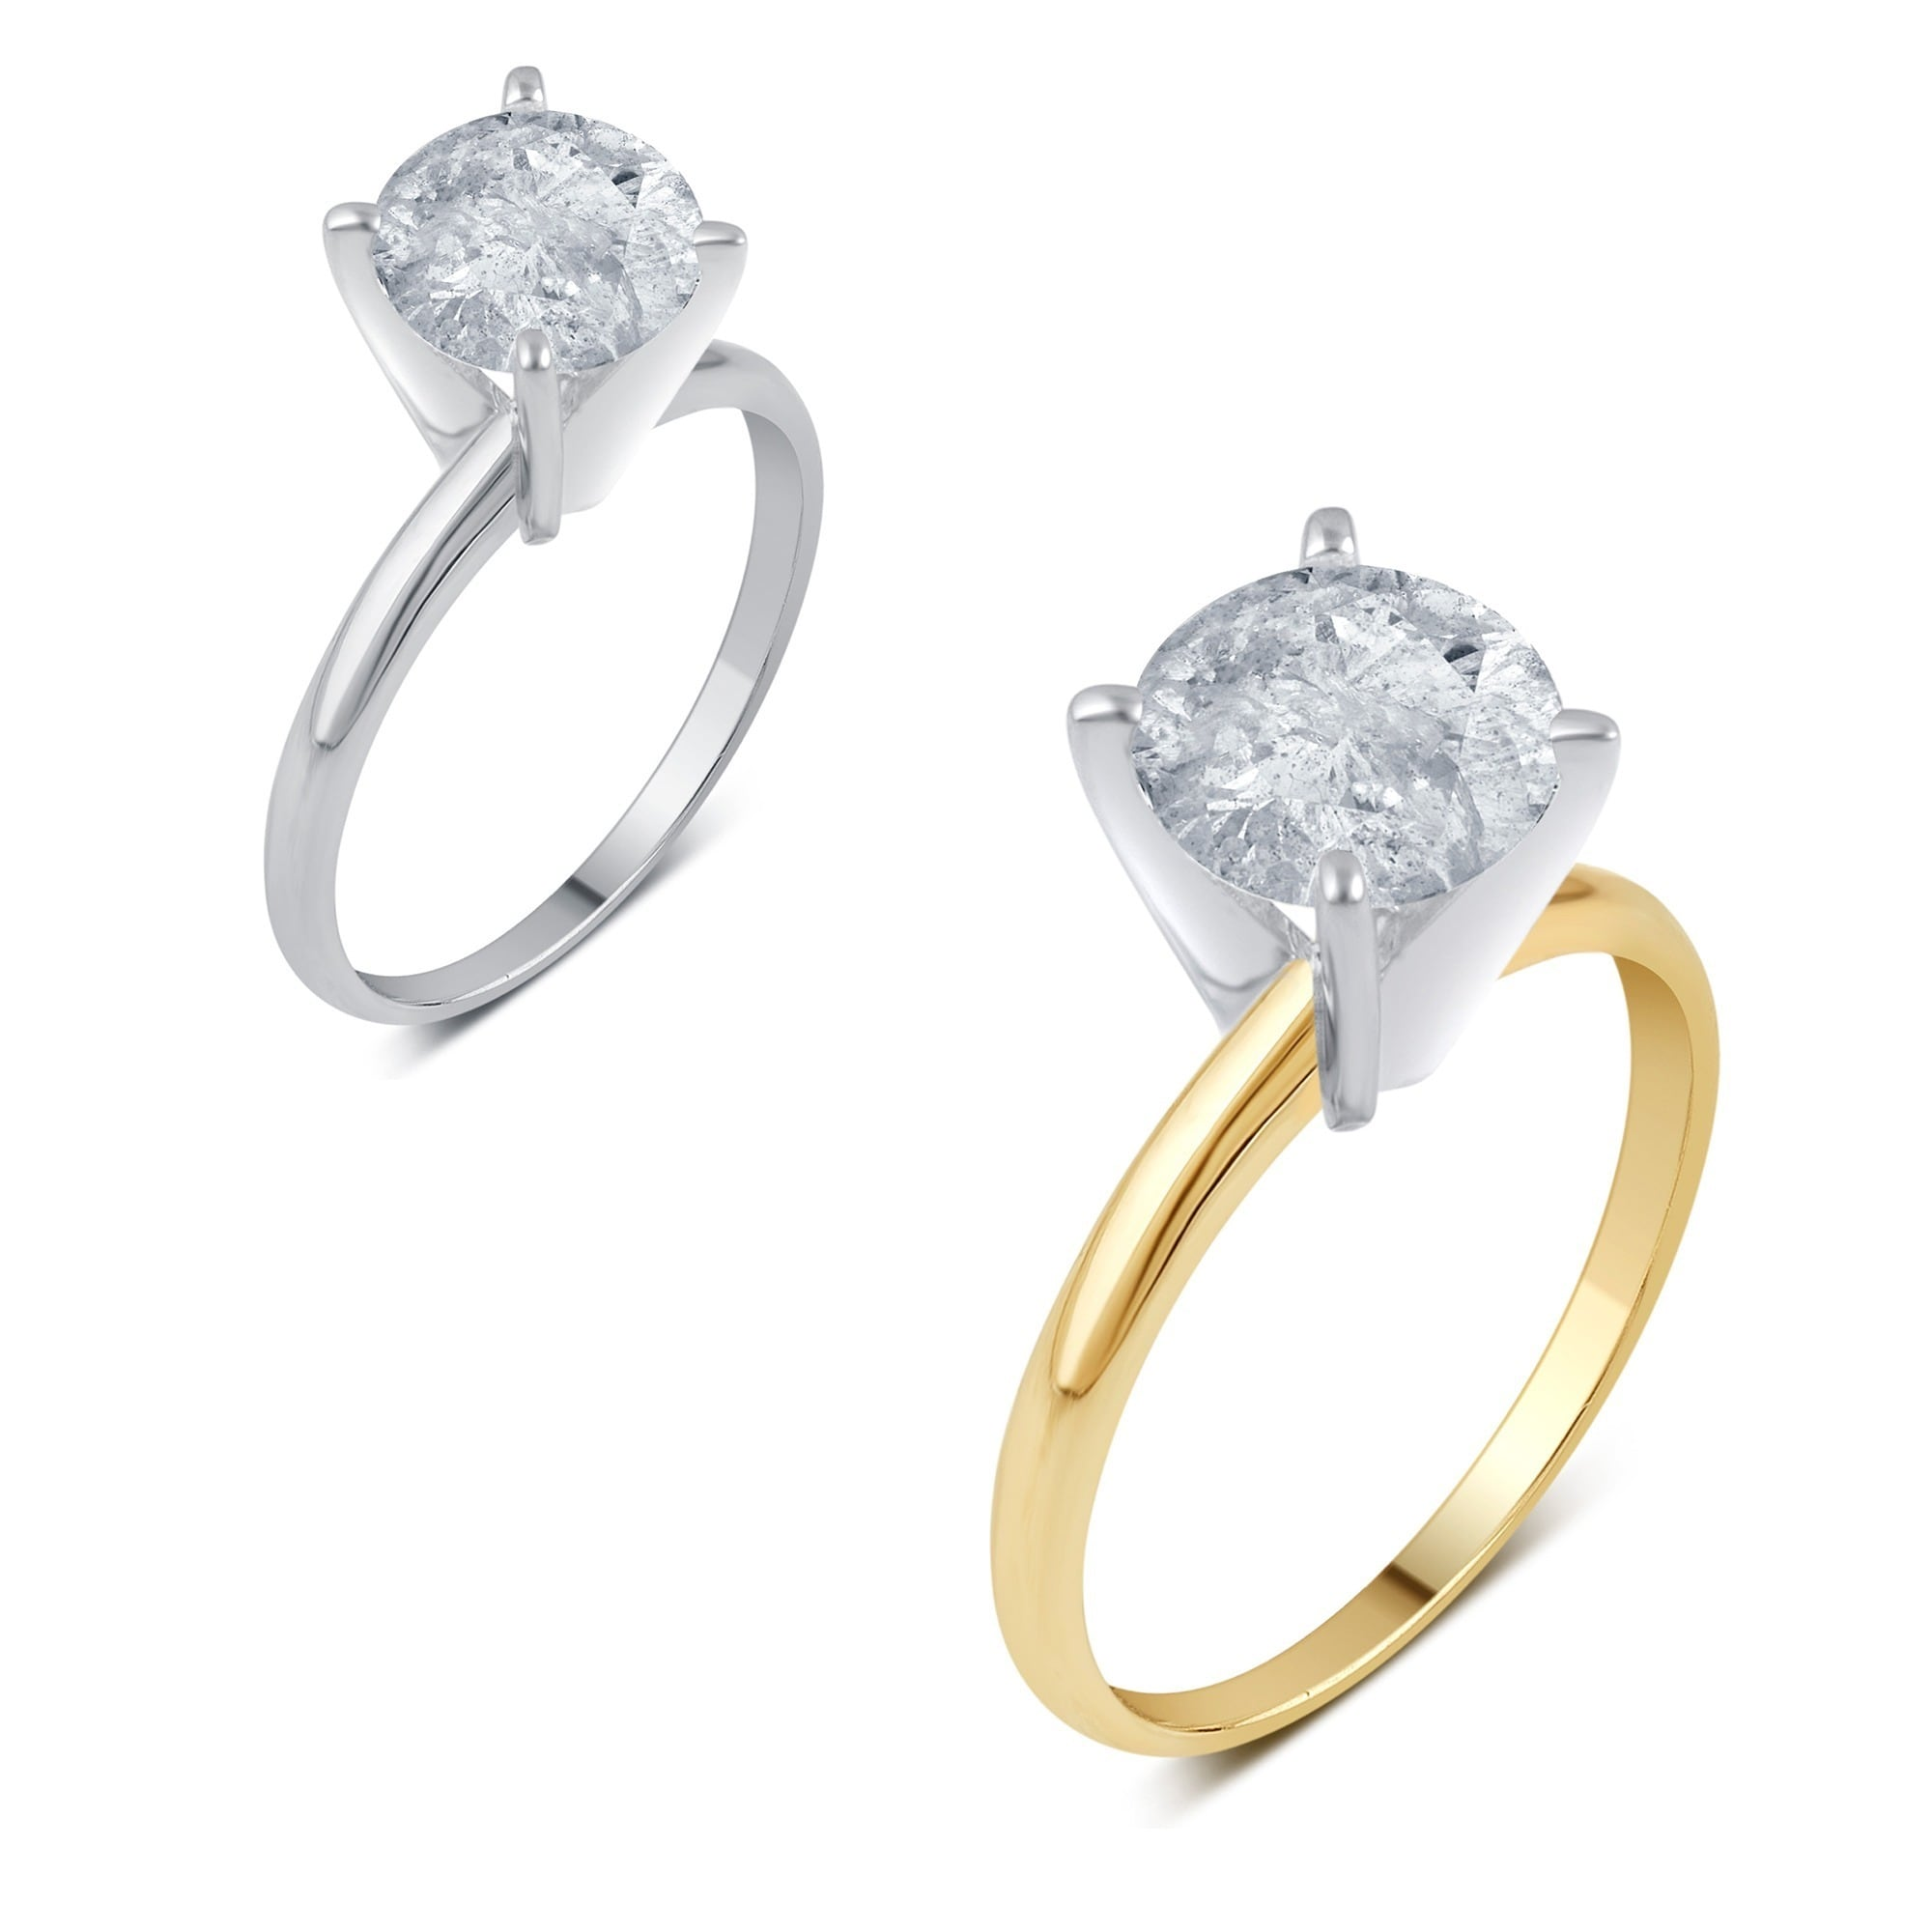 in store martin ring st engagement round diamond rings brilliant online stores and product best jewery dk maarten at gems